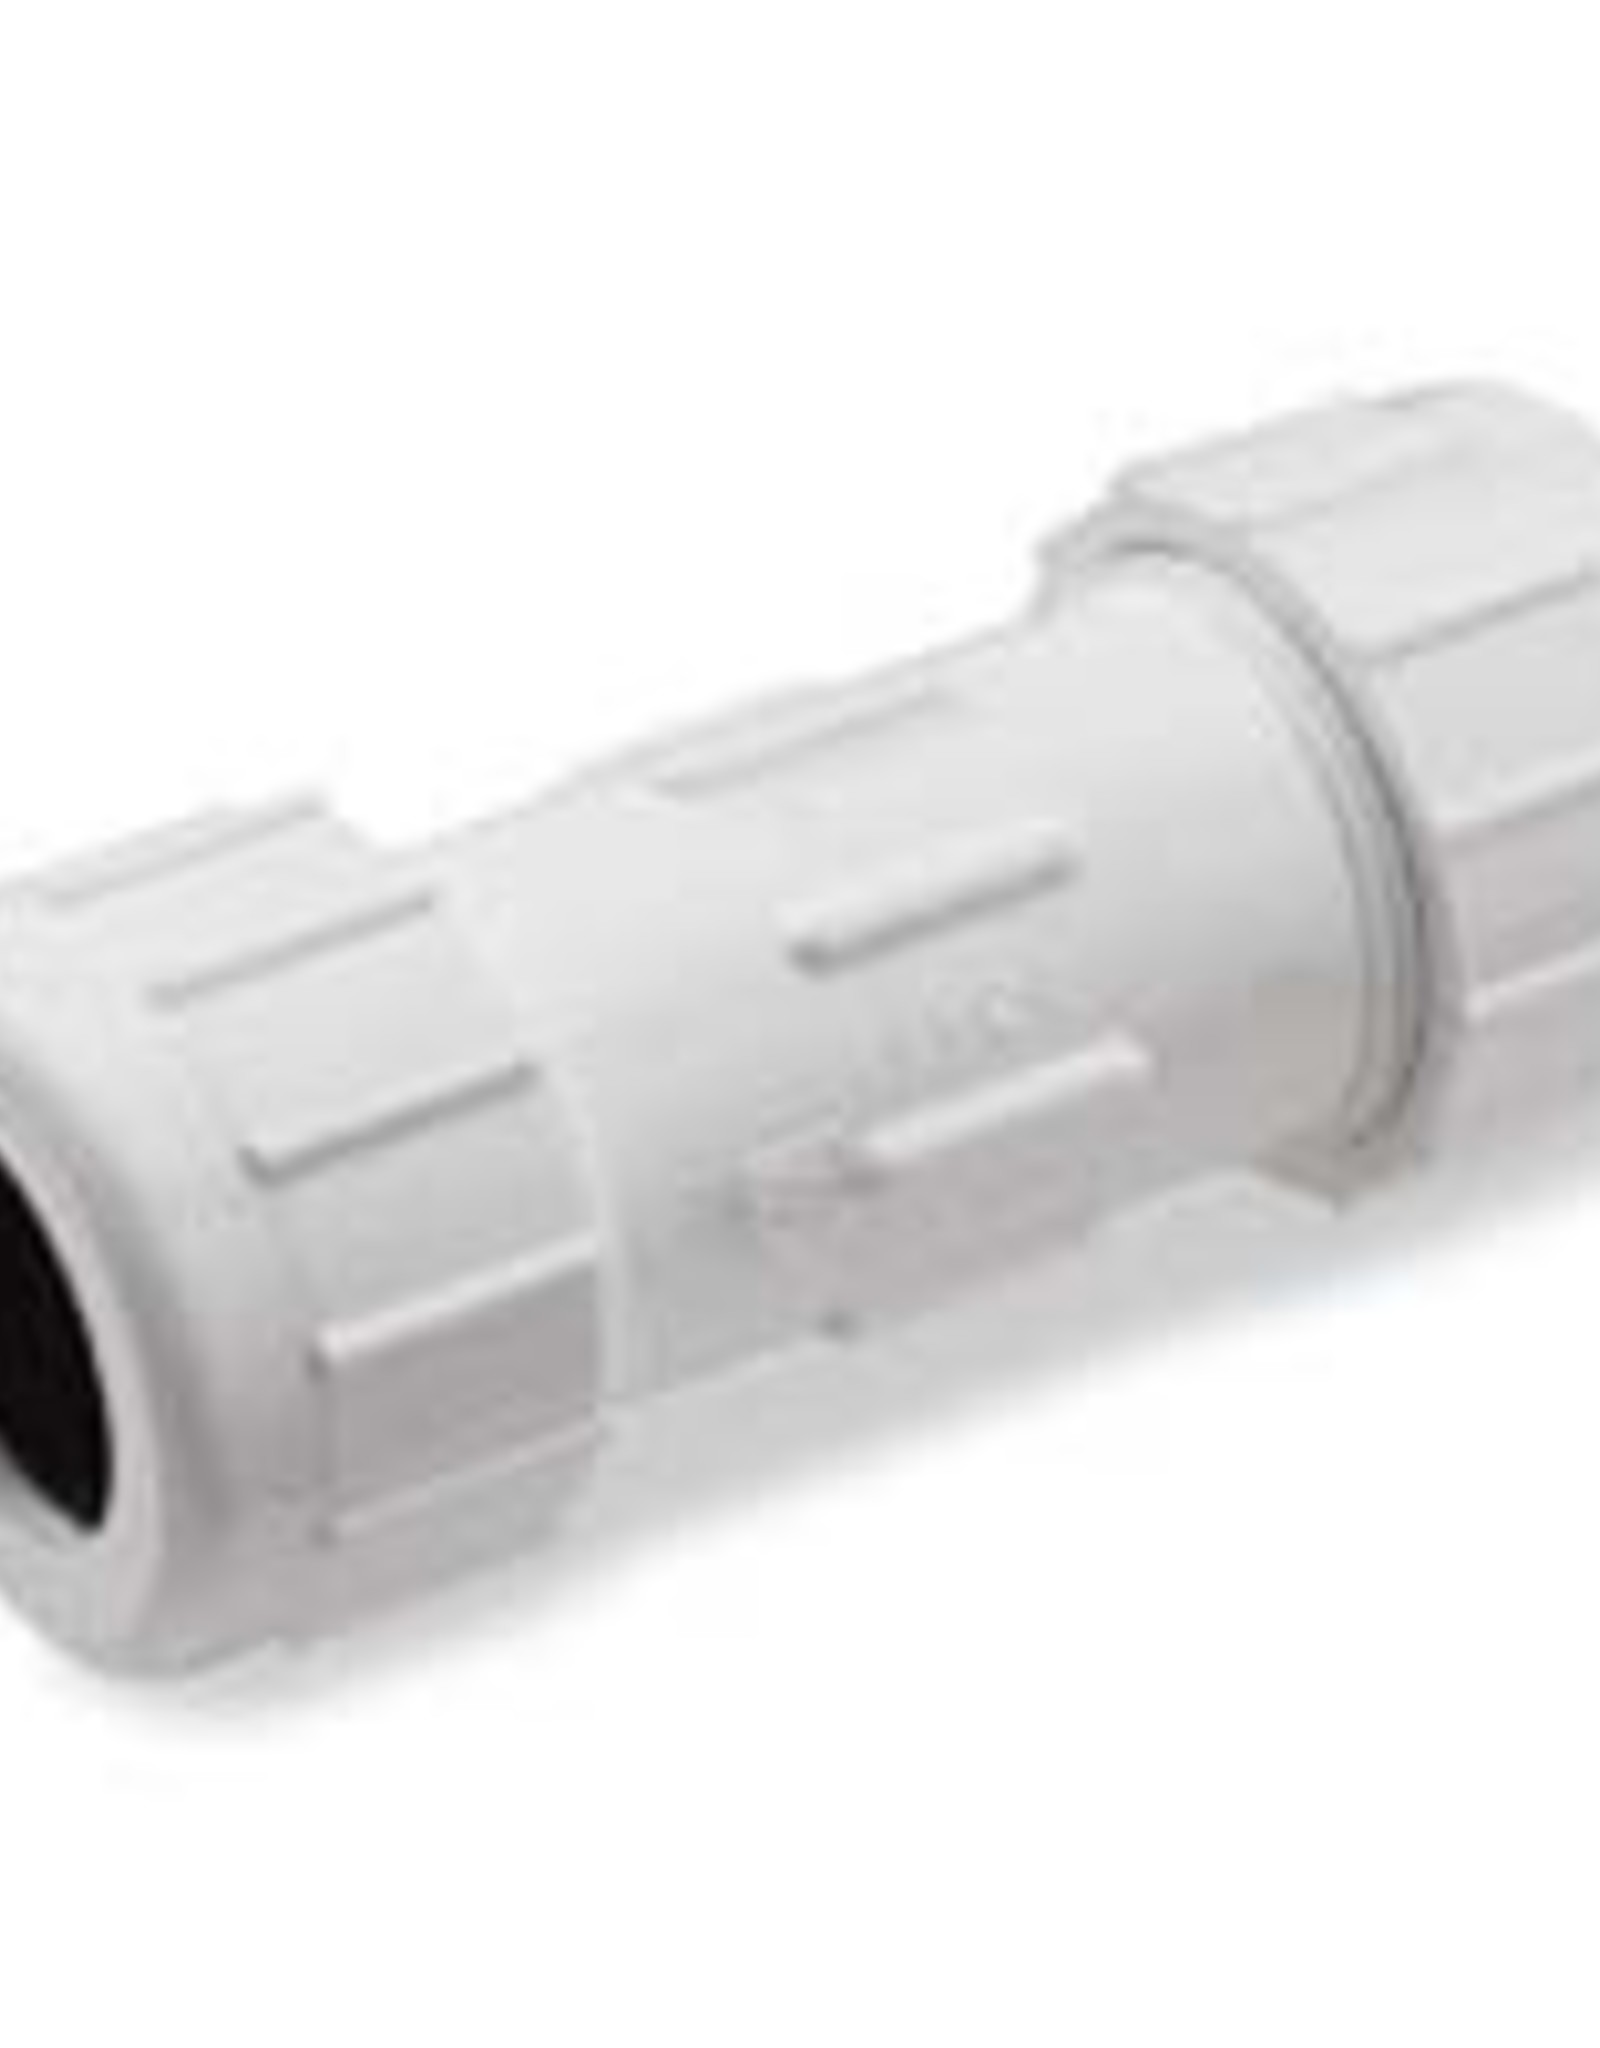 "Nds PVC 1"" Compression Repair Coupling"